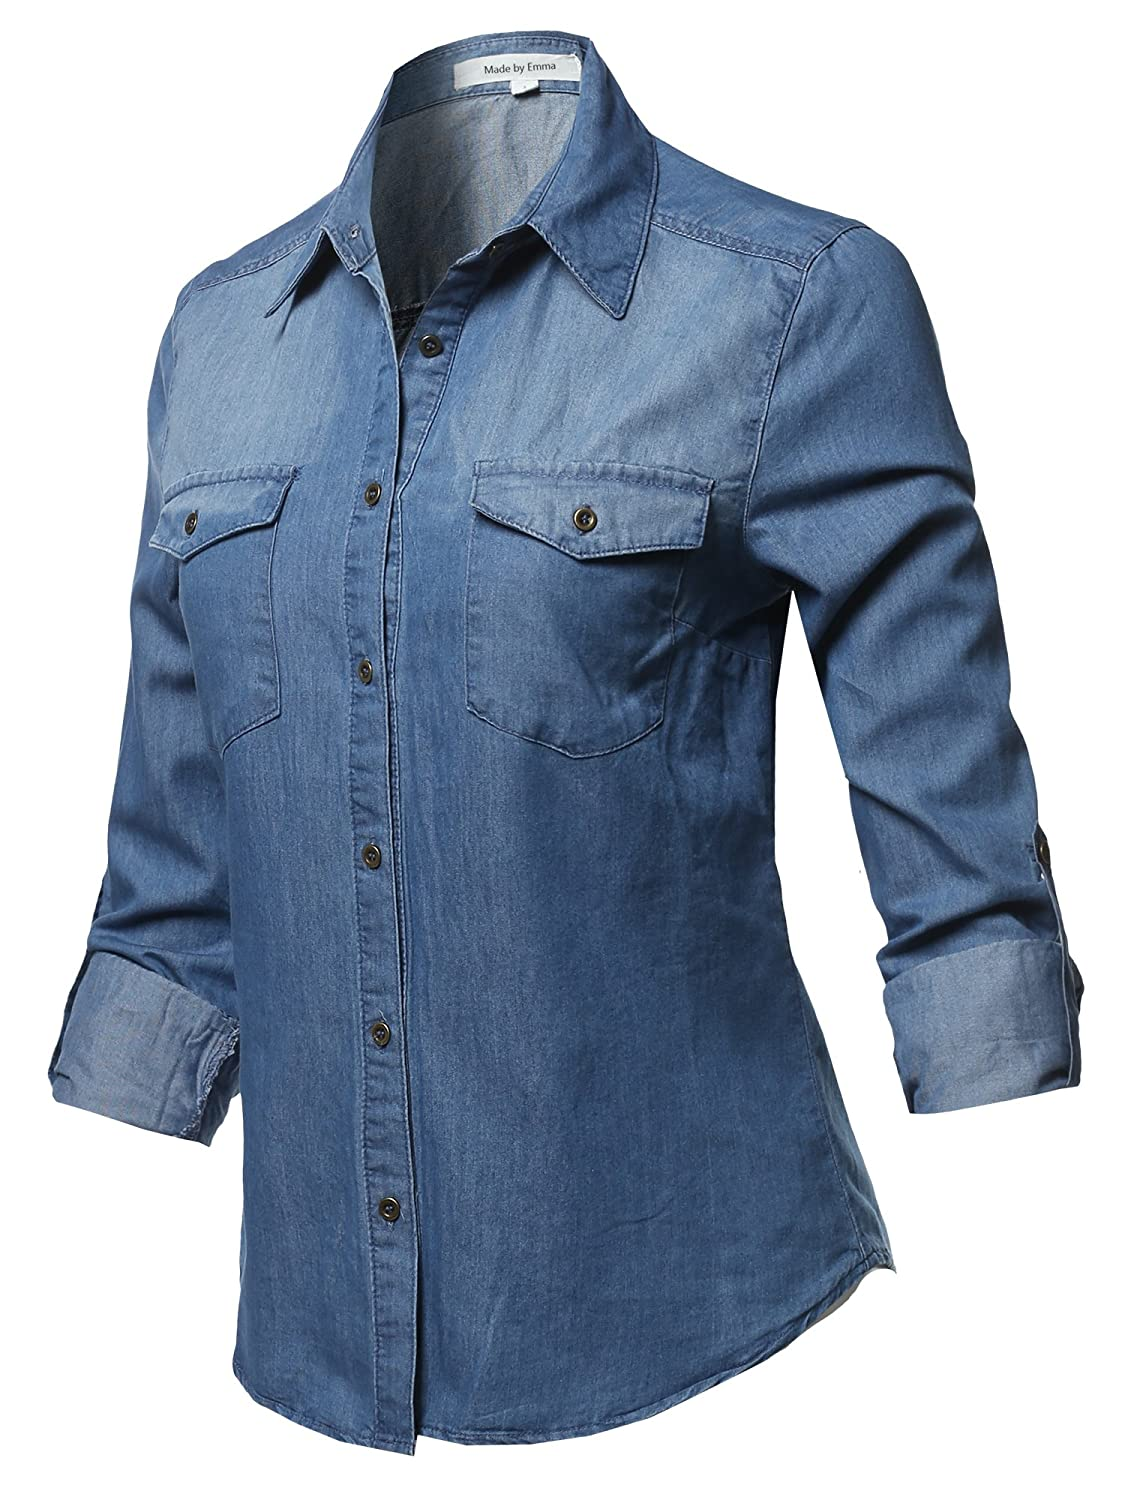 Made by Emma Women's Basic Classic Button Closure Roll Up Sleeves Chest Pocket Denim Chambray